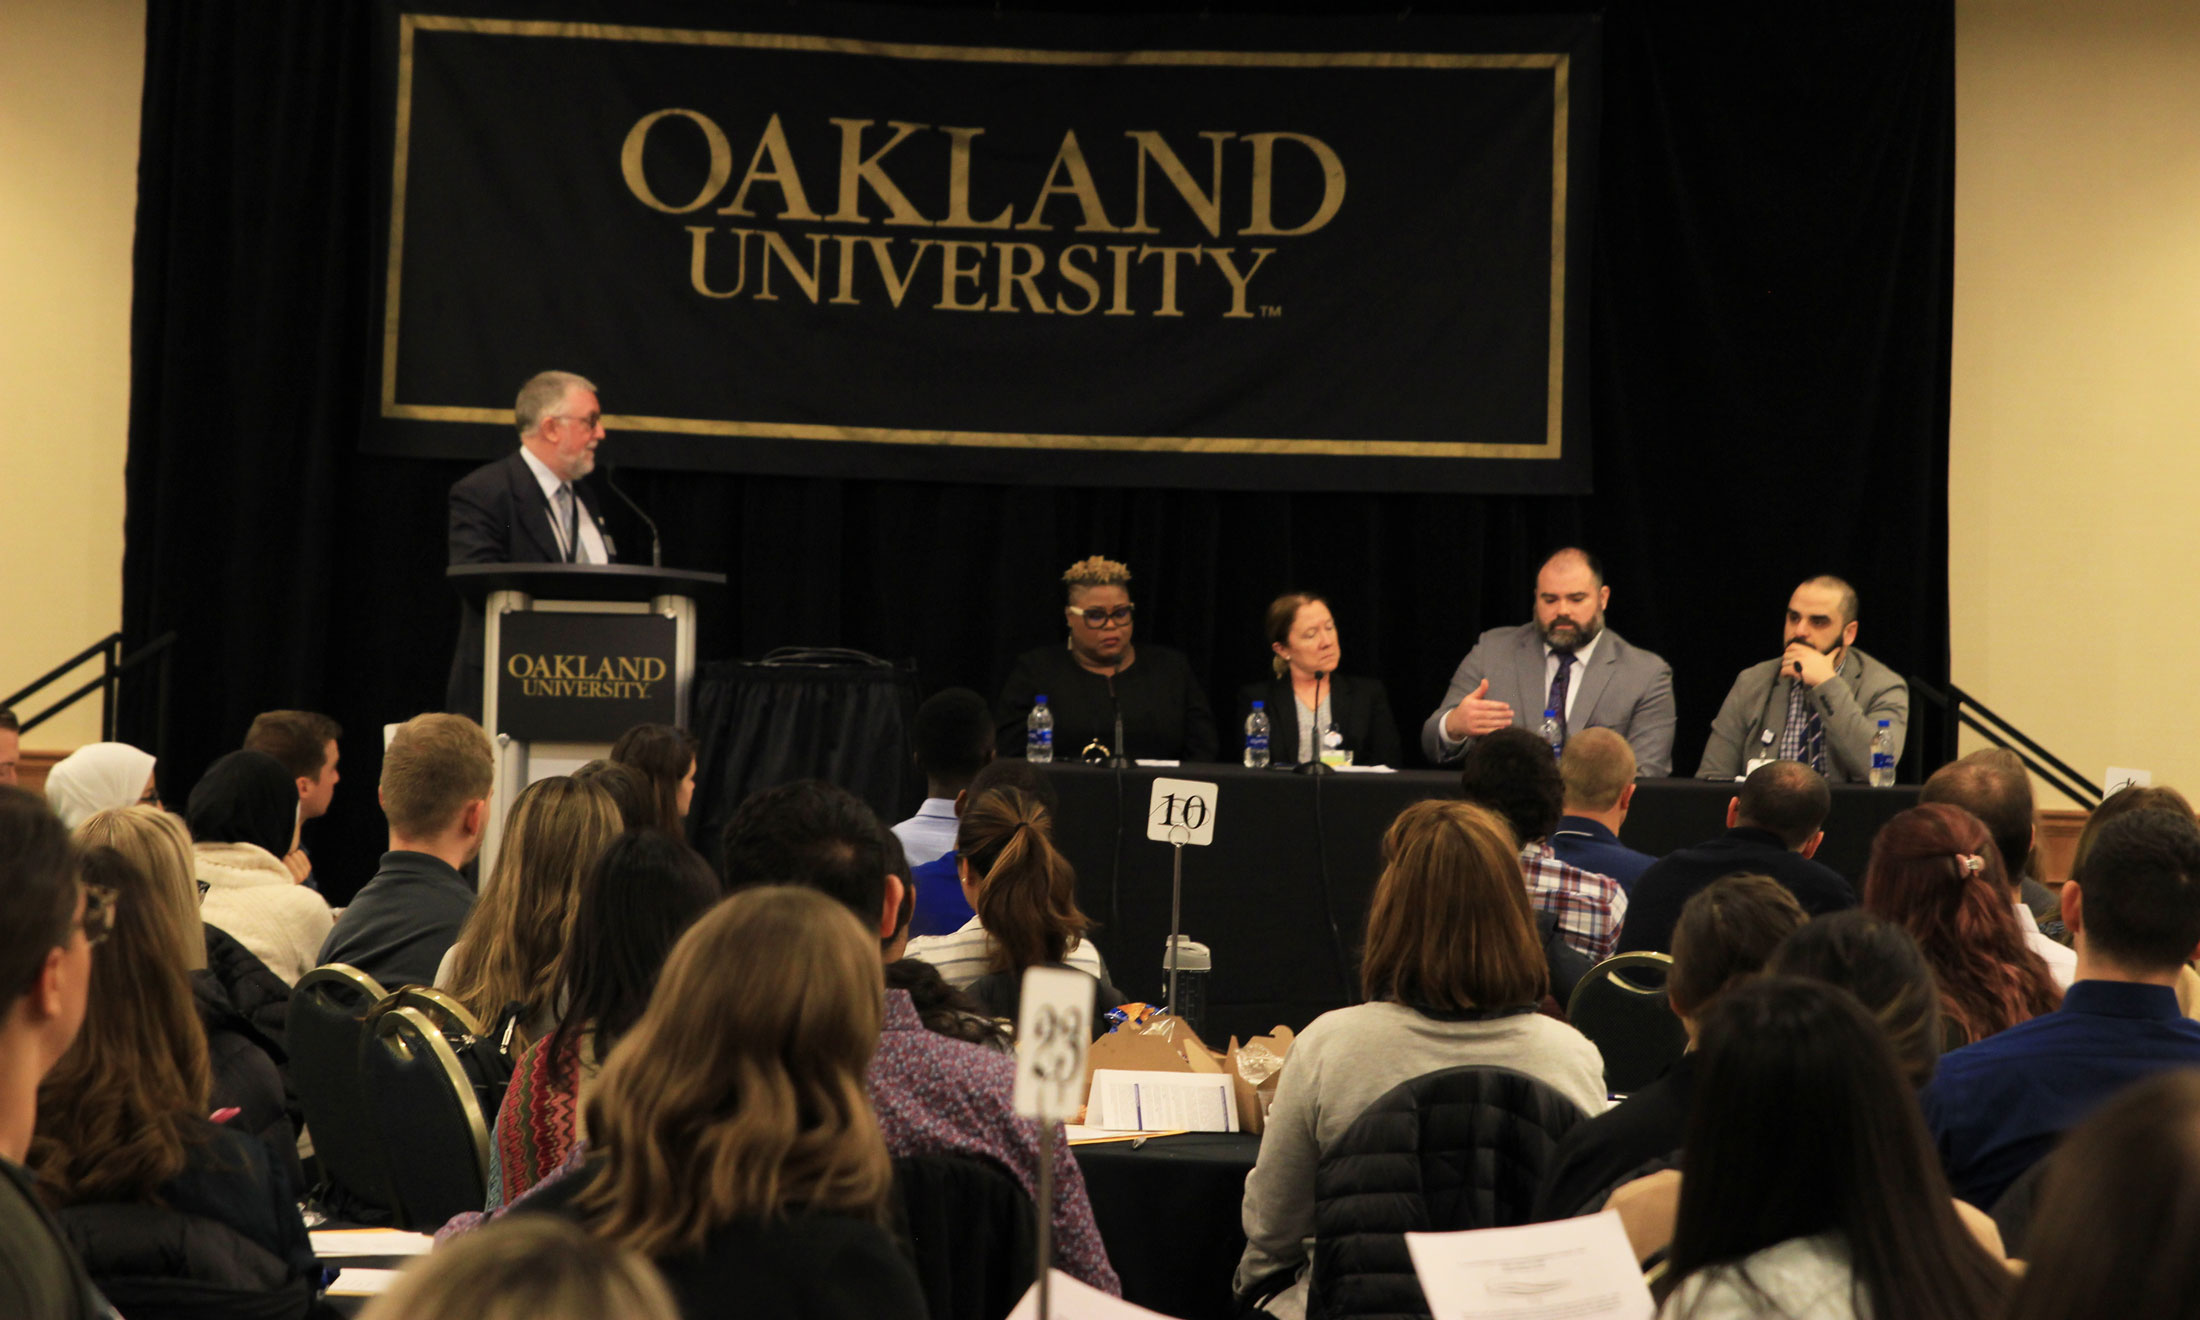 Interprofessional Workshop on Opioid Abuse Panel Discussion